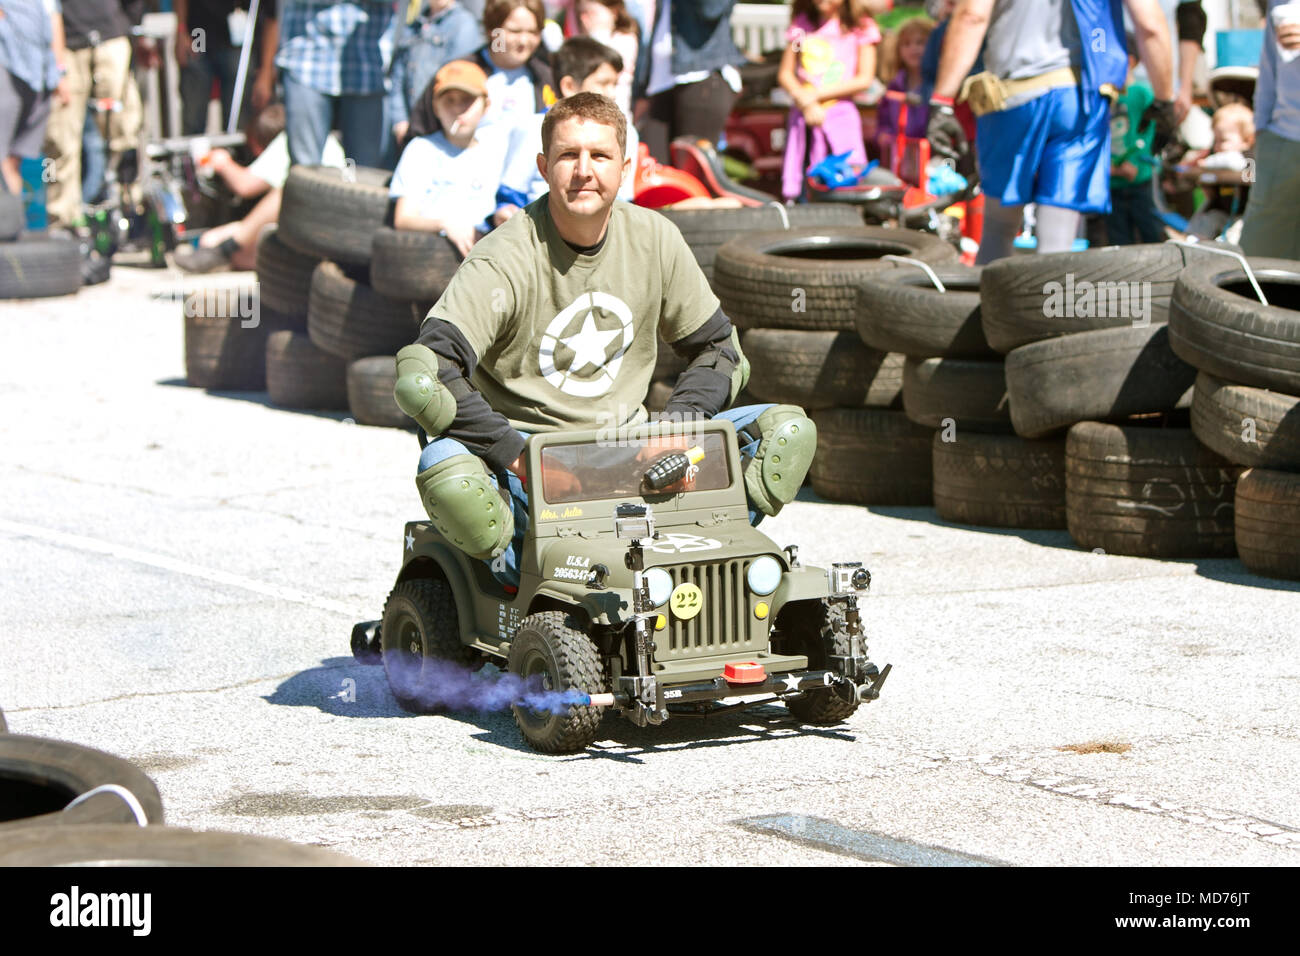 A man drives a miniature army jeep in the power racing series at the annual Maker Faire on October 4, 2014 in Decatur, GA. Stock Photo